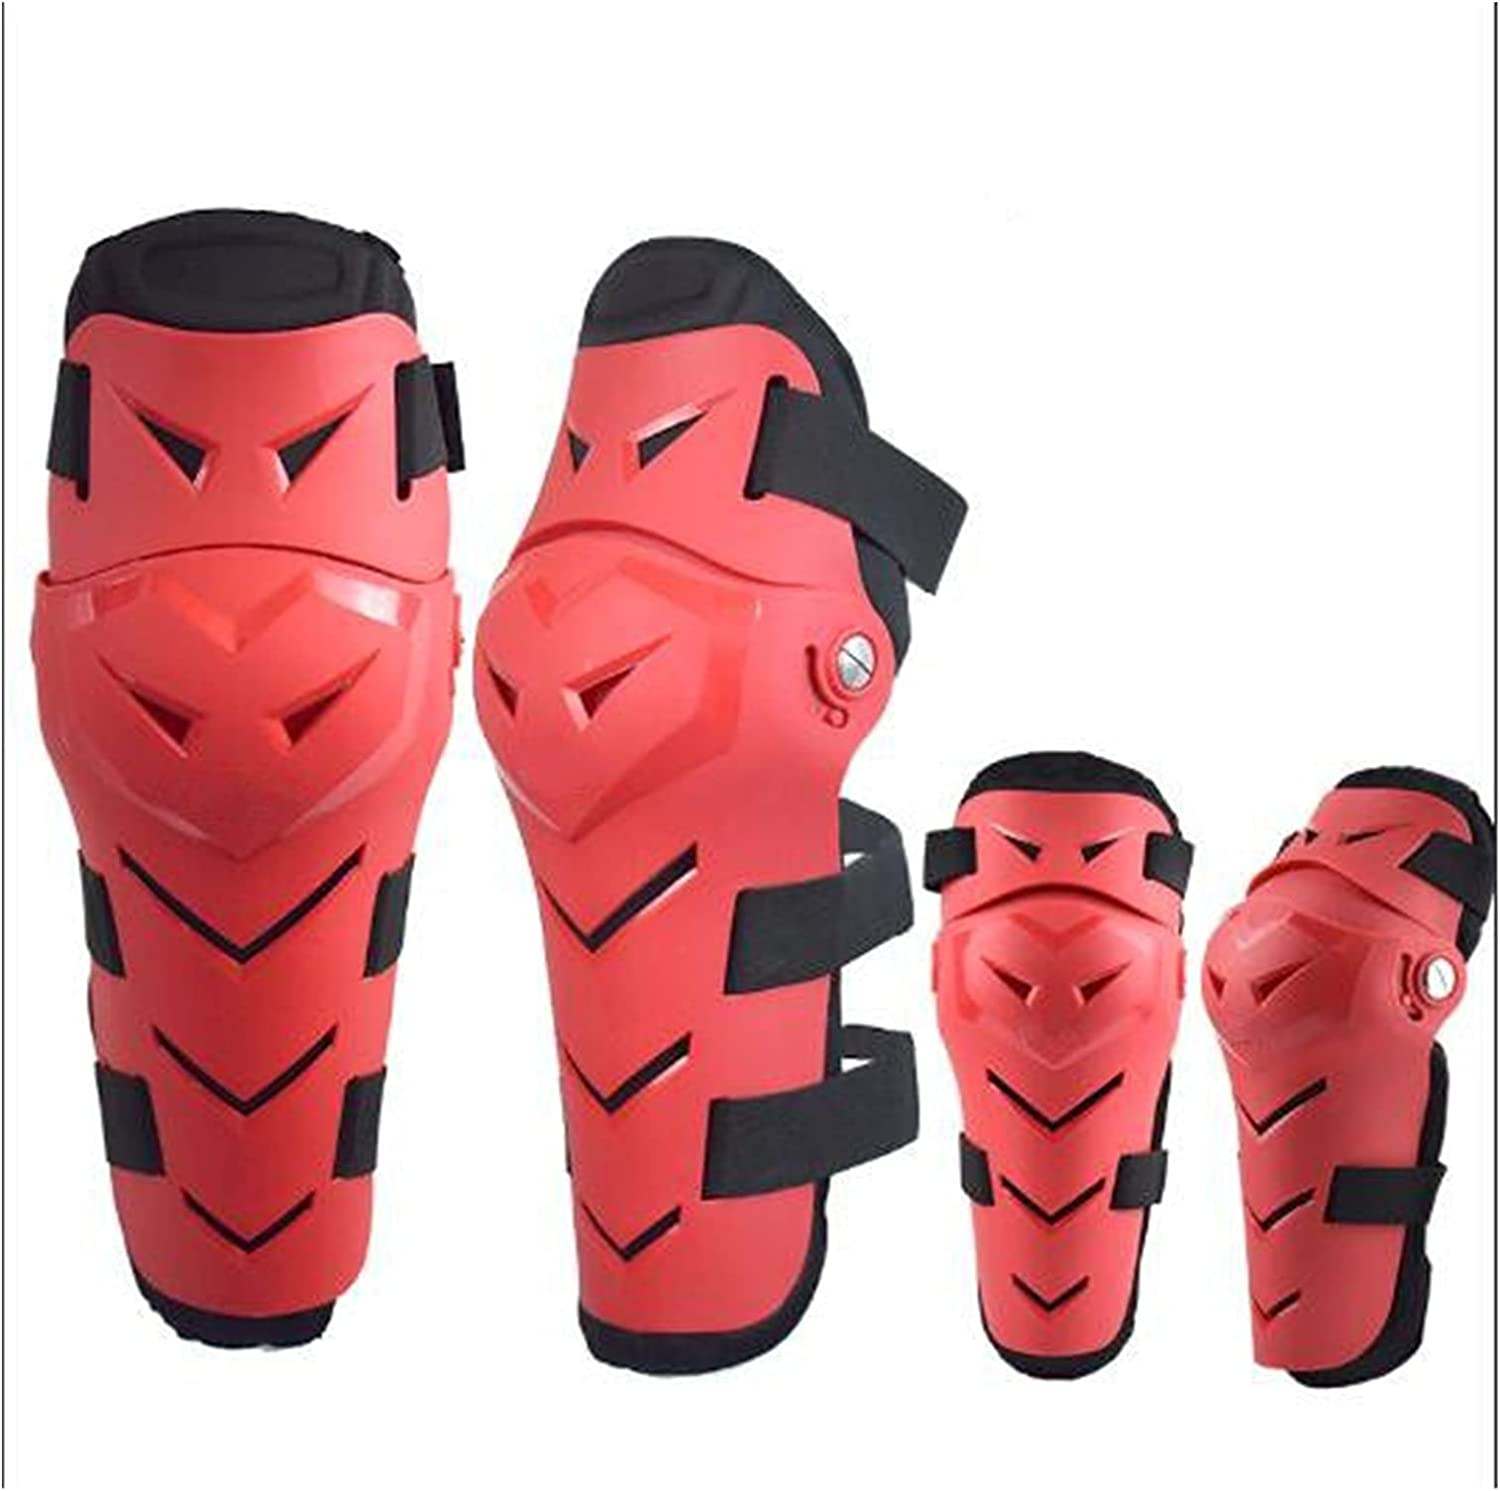 Racing OFFicial mail order Knee 55% OFF Pads Motorcycle Brace Motocross Kne Outfit